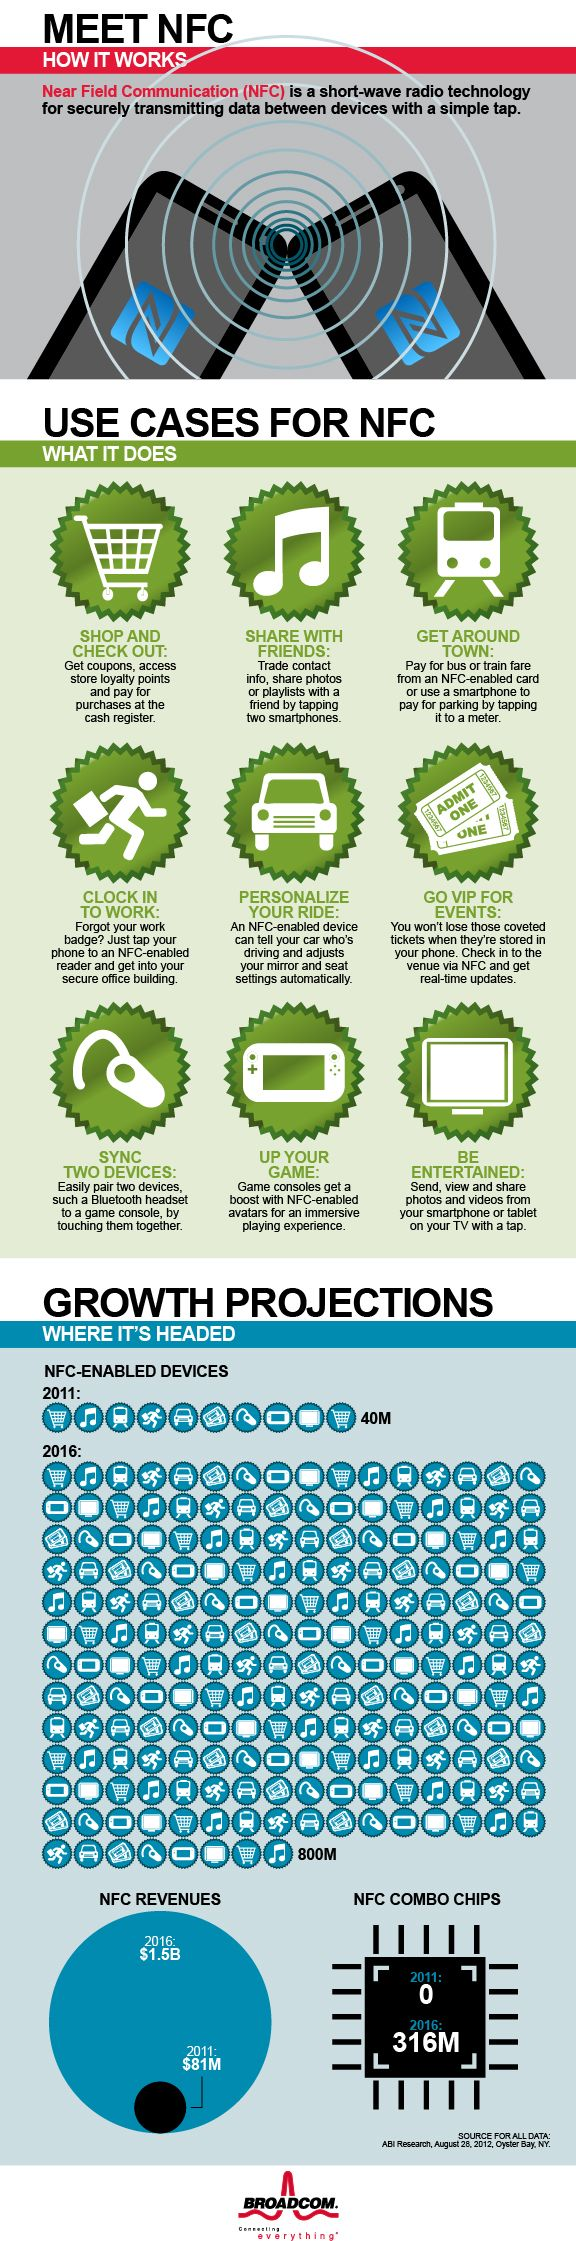 Get a primer on Near Field Communications (NFC), its uses and growth potential with this infographic